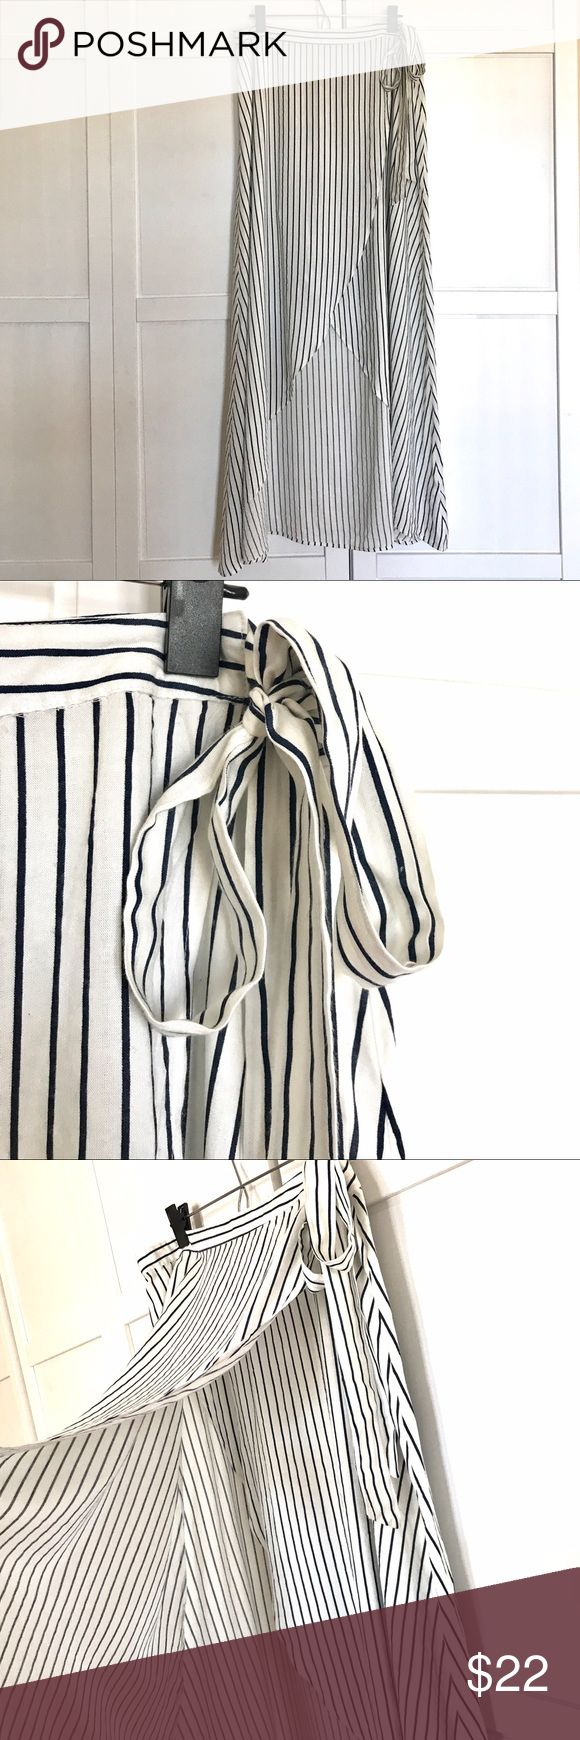 New Look Hi Low Stripe Tie Waist Skirt Fresh and stylish skirt just in time for warmer weather - cream and blue stripes - adjustable tie at the waist - hi low - size 12 - worn once - perfect condition - made by New Look - purchased from ASOS New Look Skirts High Low